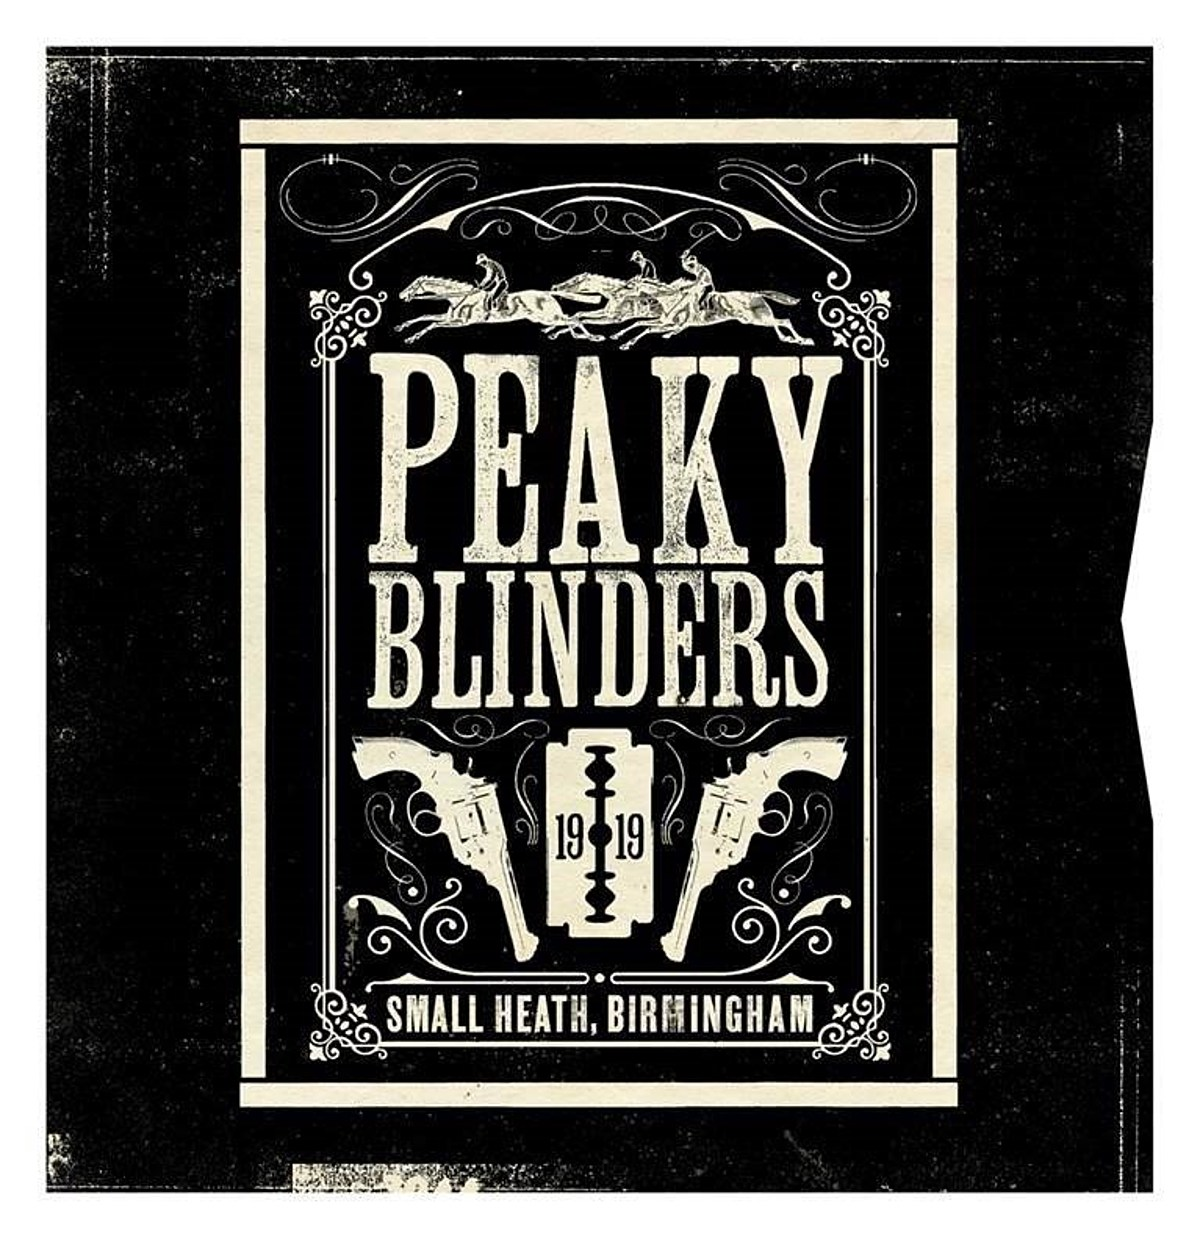 "'Peaky Blinders' soundtrack announced (stream PJ Harvey's cover of Nick Cave's ""Red Right Hand"")"